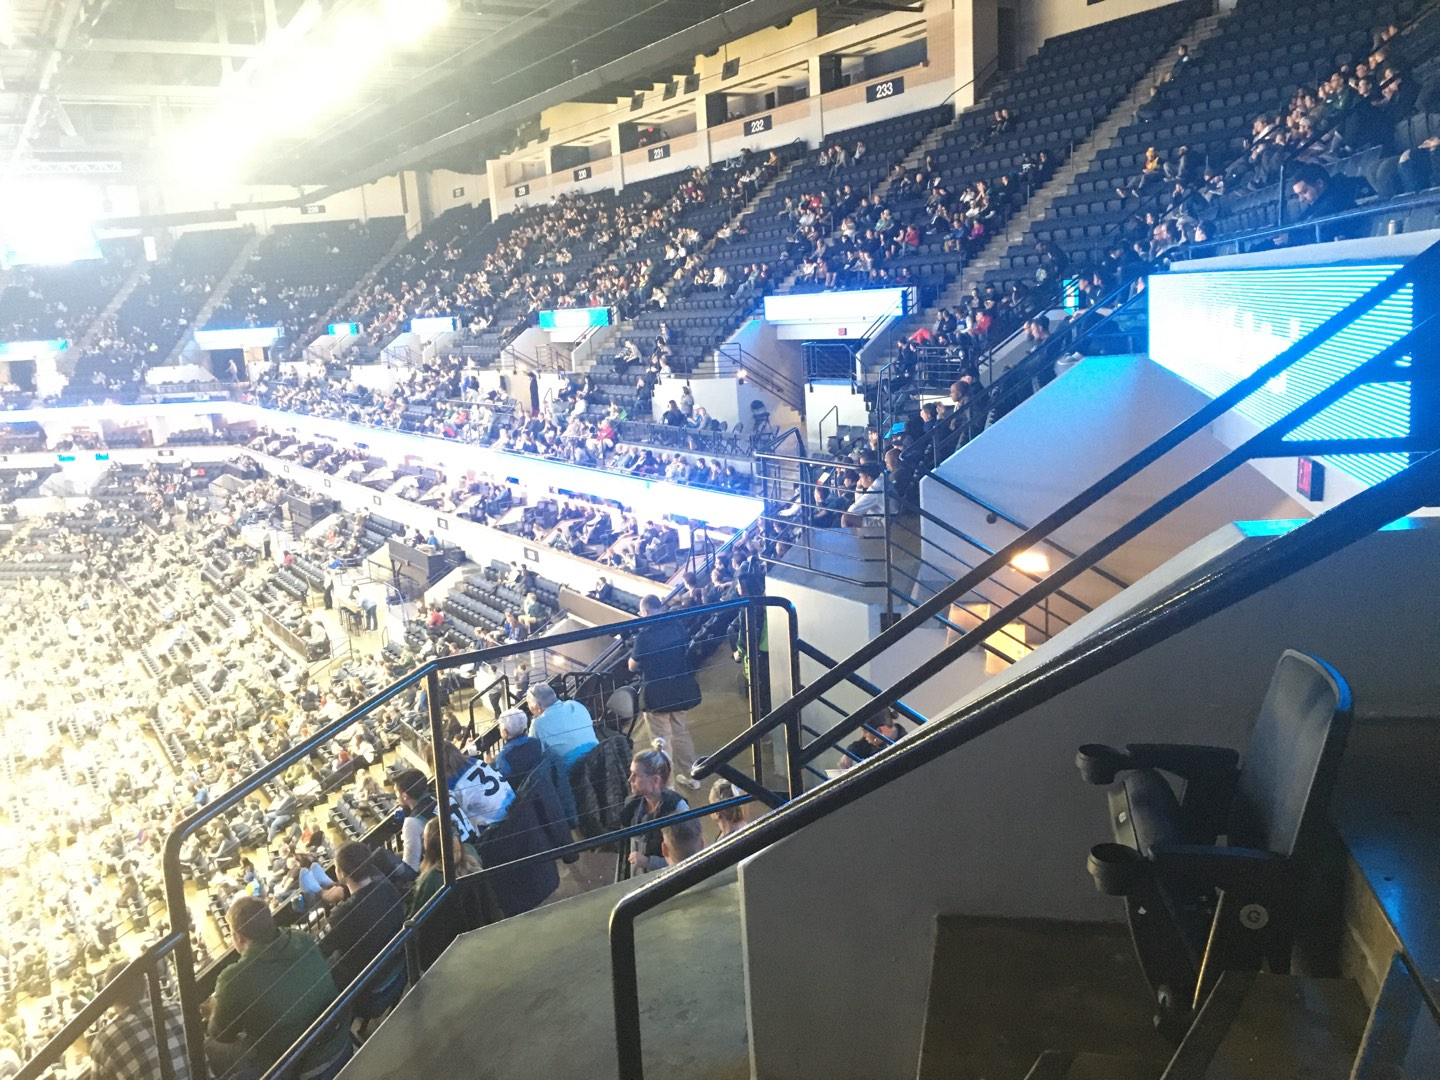 Target Center Section 238 Row G Seat 16